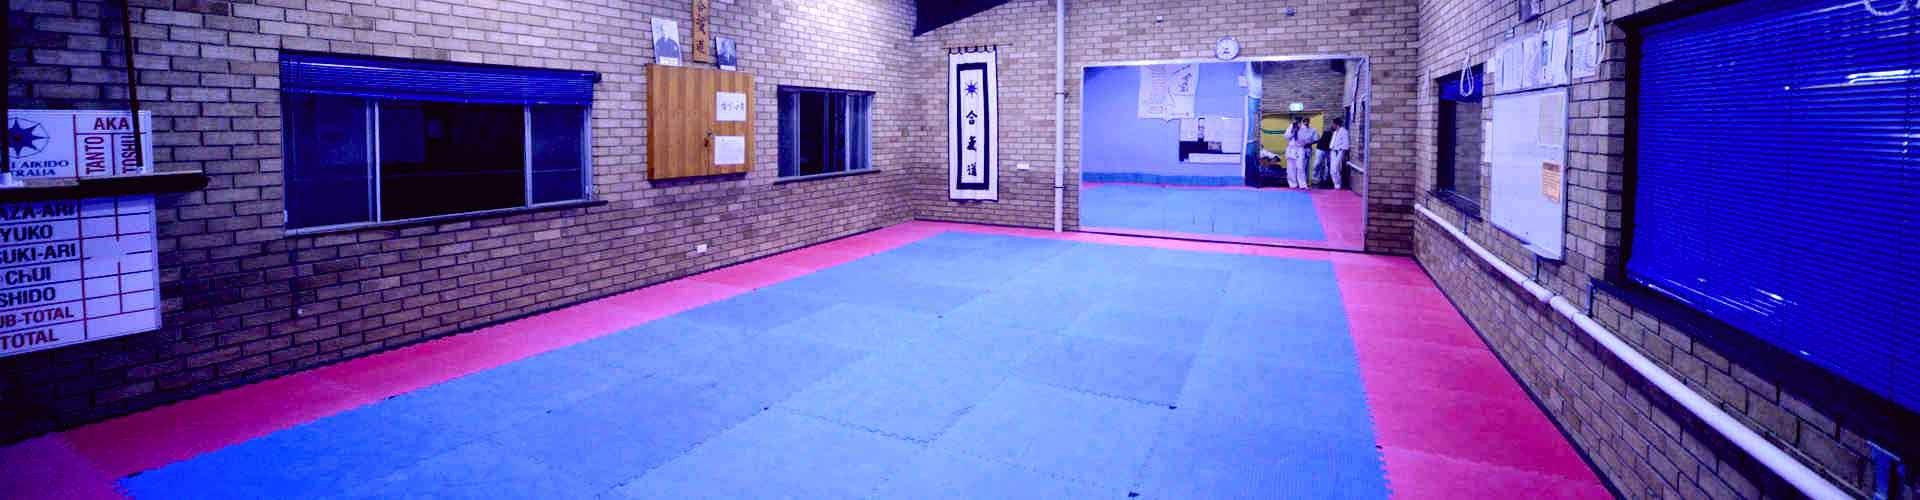 OUR DOJO AT NORTH RYDE RSL YOUTH CLUB